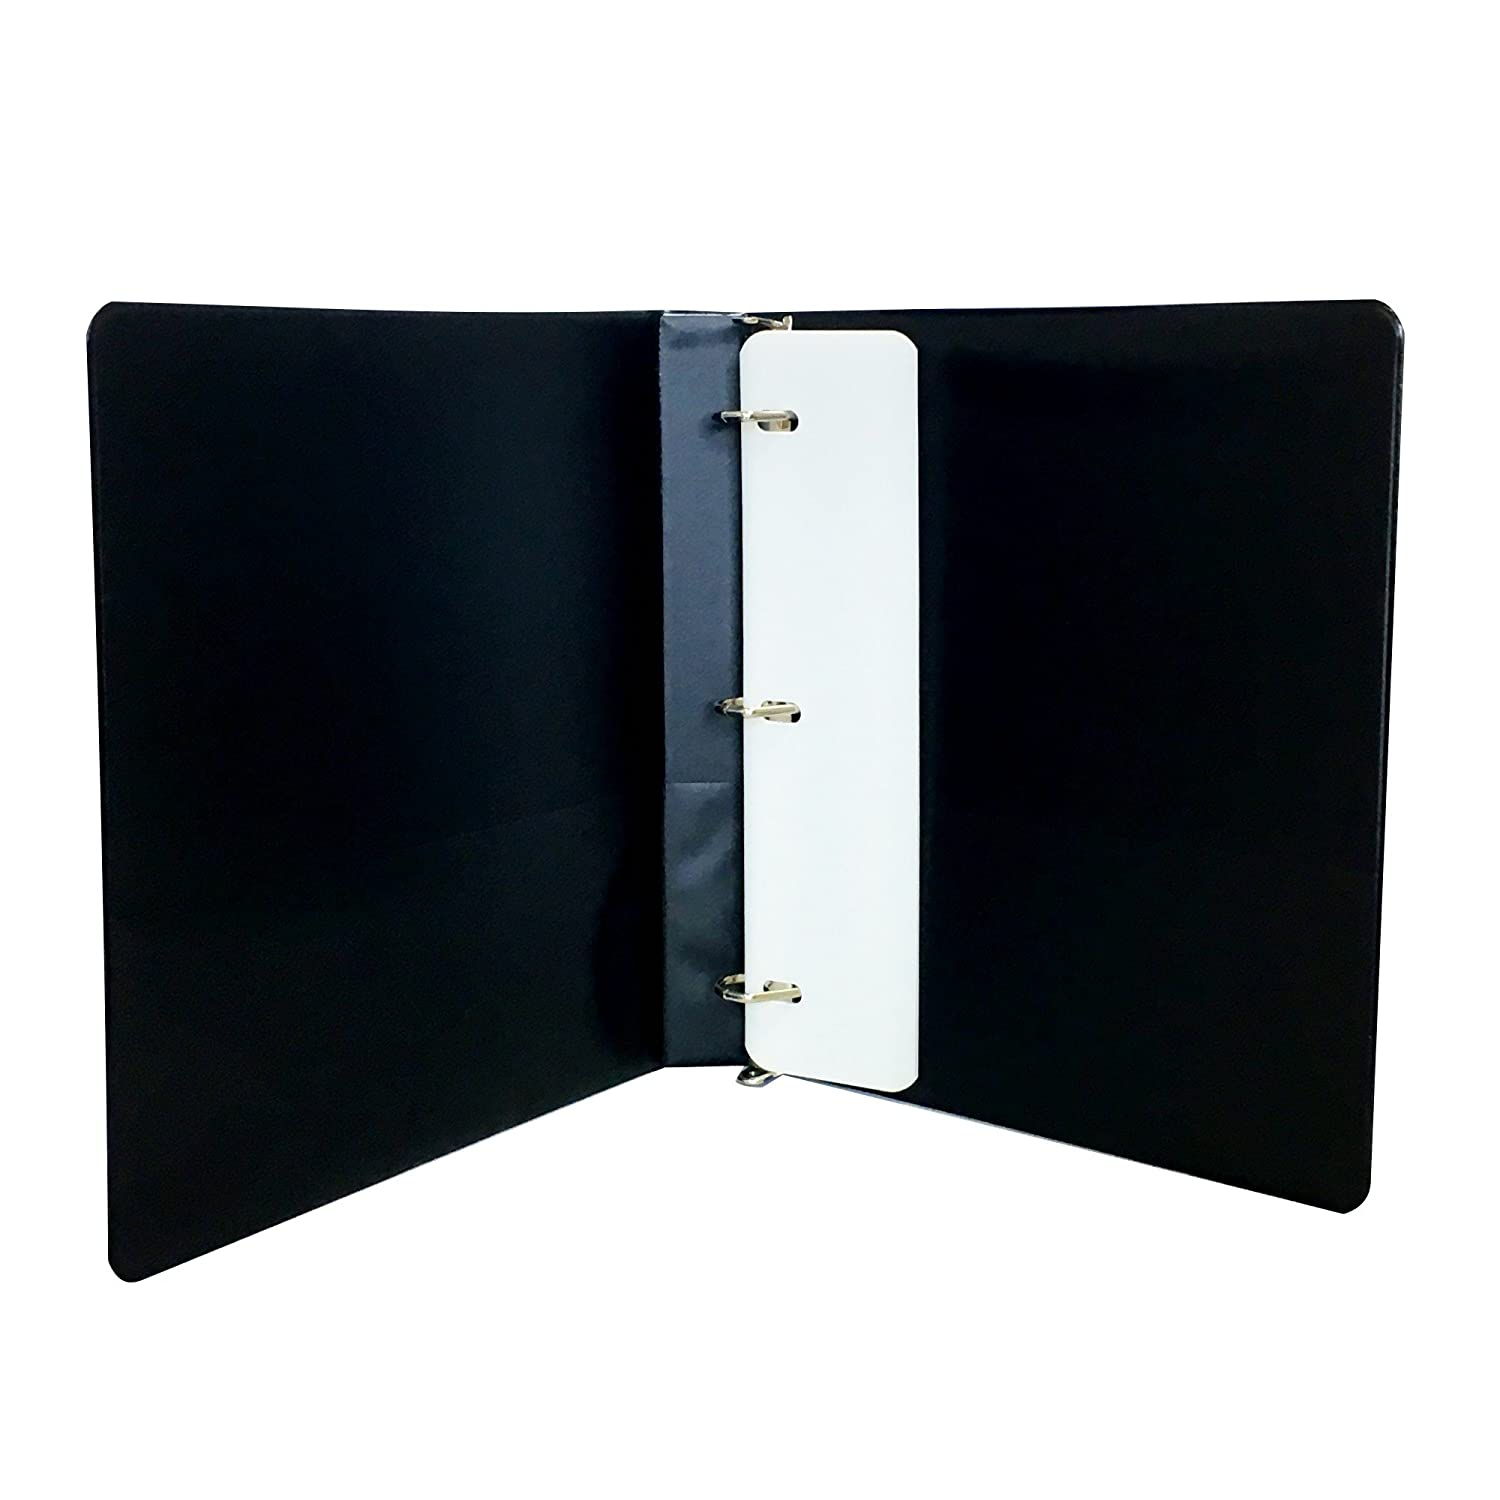 3 Ring Binder Black 5 Inch Slant D-Rings Clear View Pockets